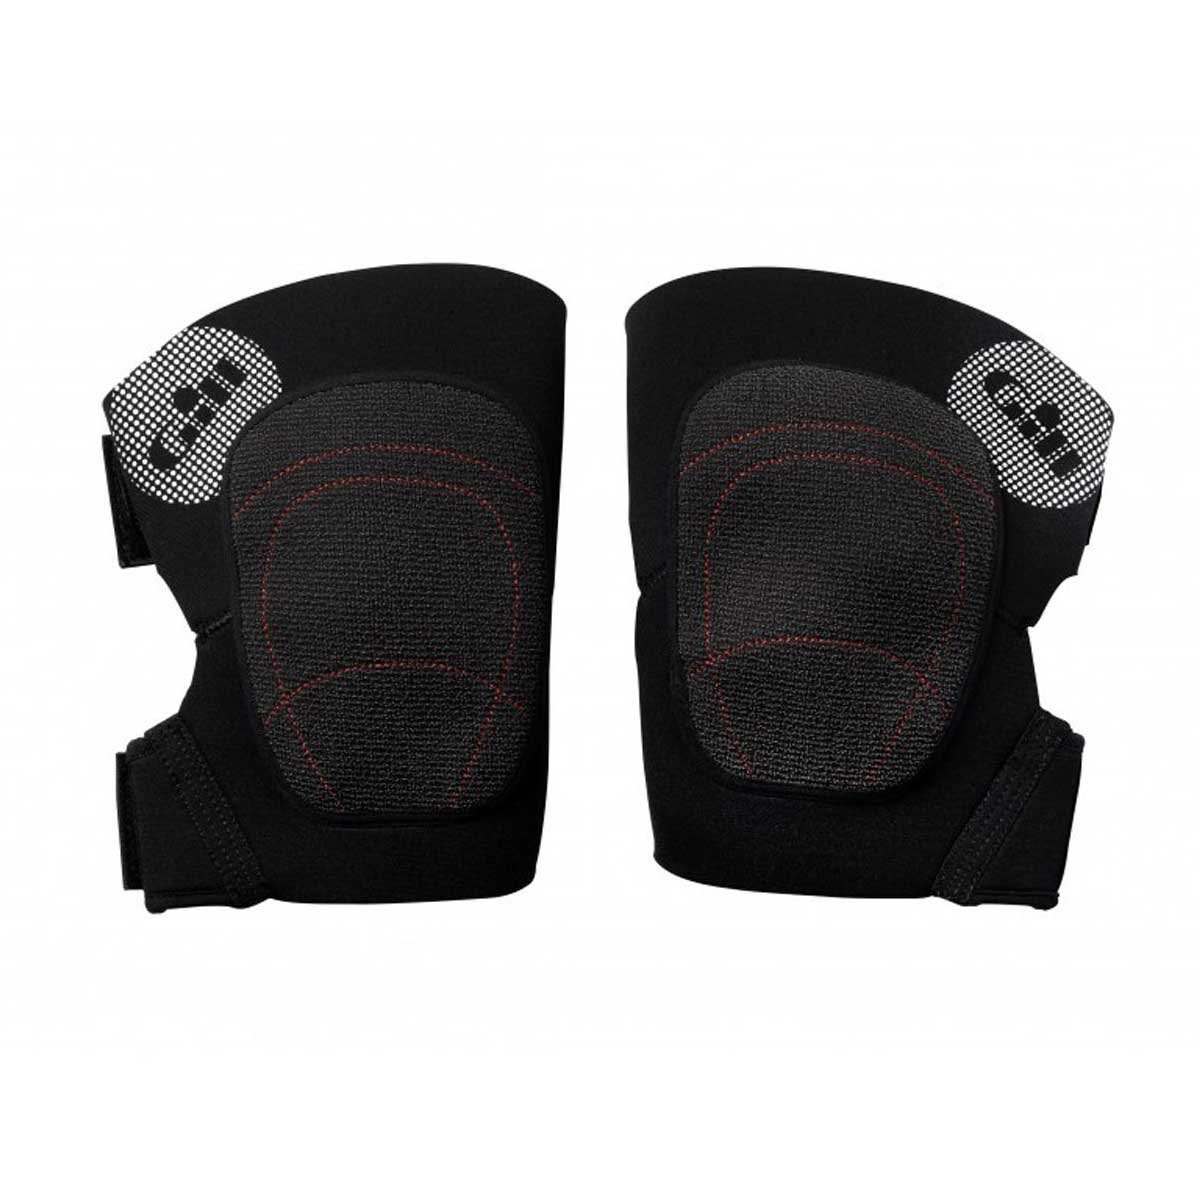 Gill Knee Pads 4519 ONE SIZE FITS ALL …